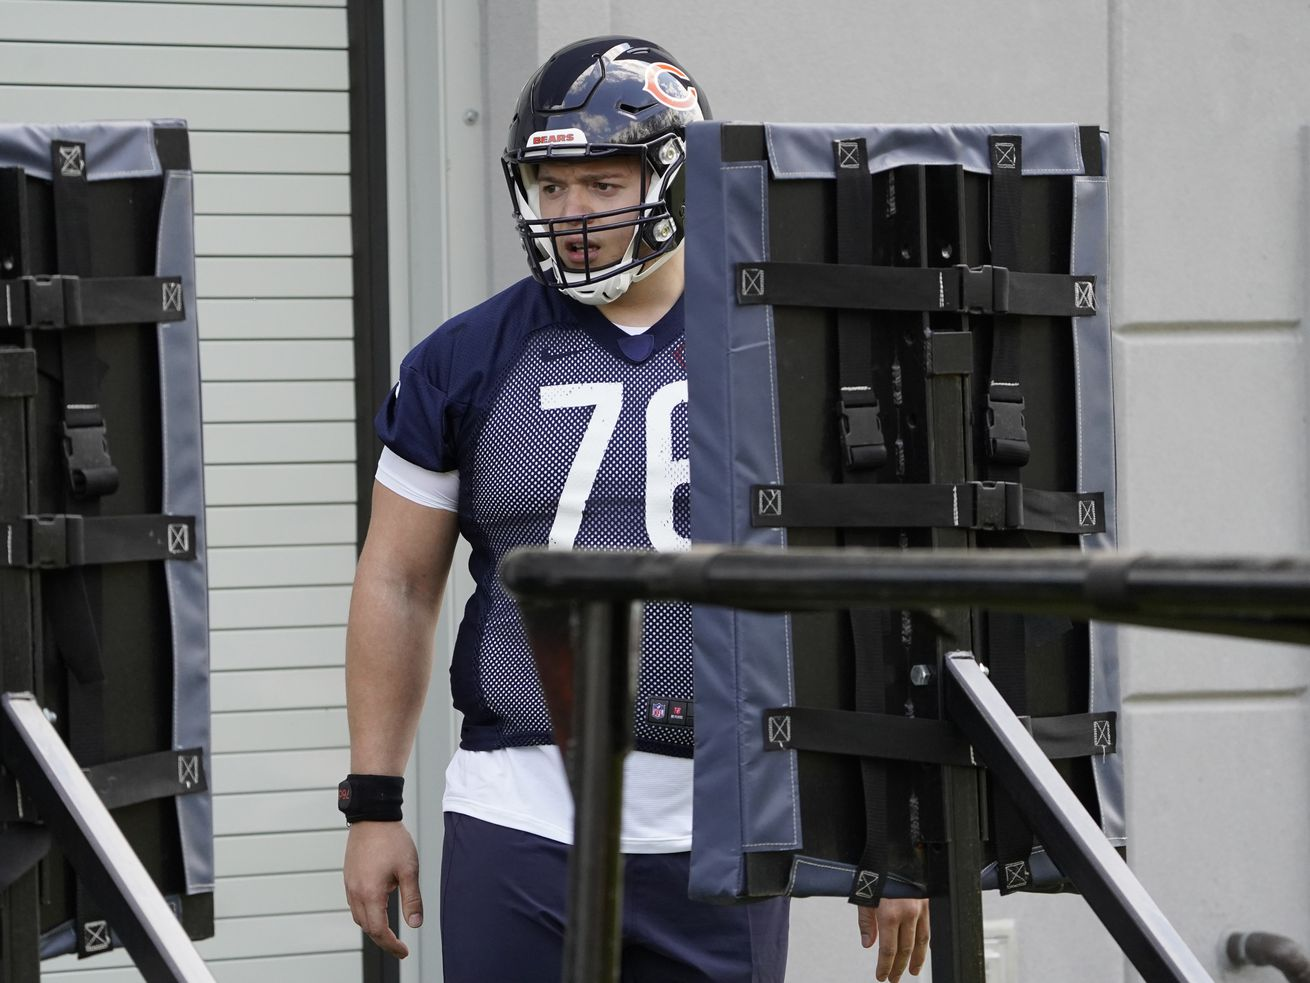 Bears rookie offensive tackle Teven Jenkins, a second-round pick from Oklahoma State, is pegged as the starter at left tackle this season.